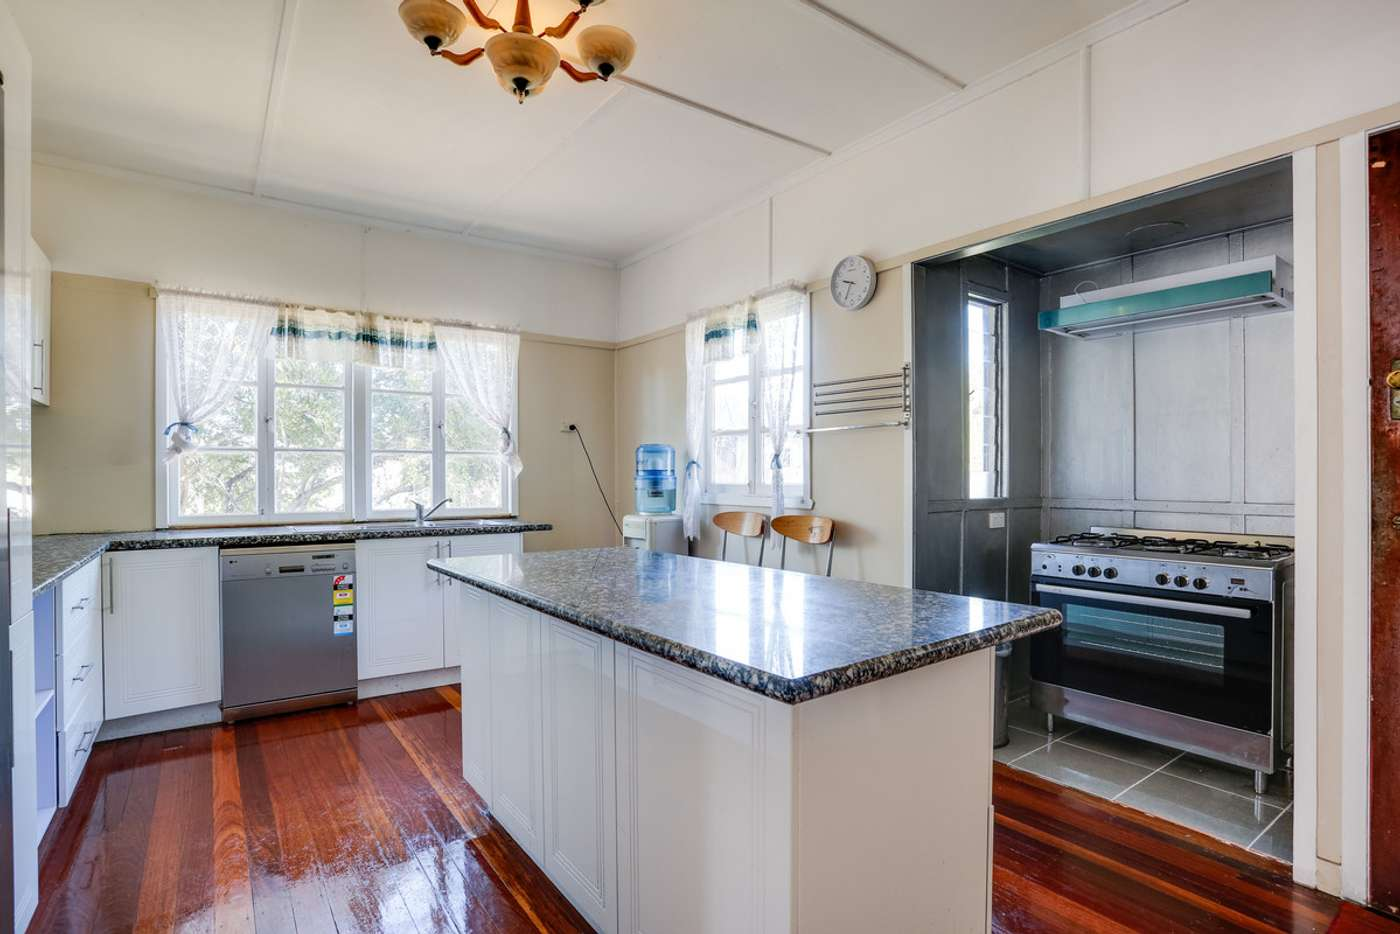 Main view of Homely house listing, 23 Layard Street, Holland Park QLD 4121